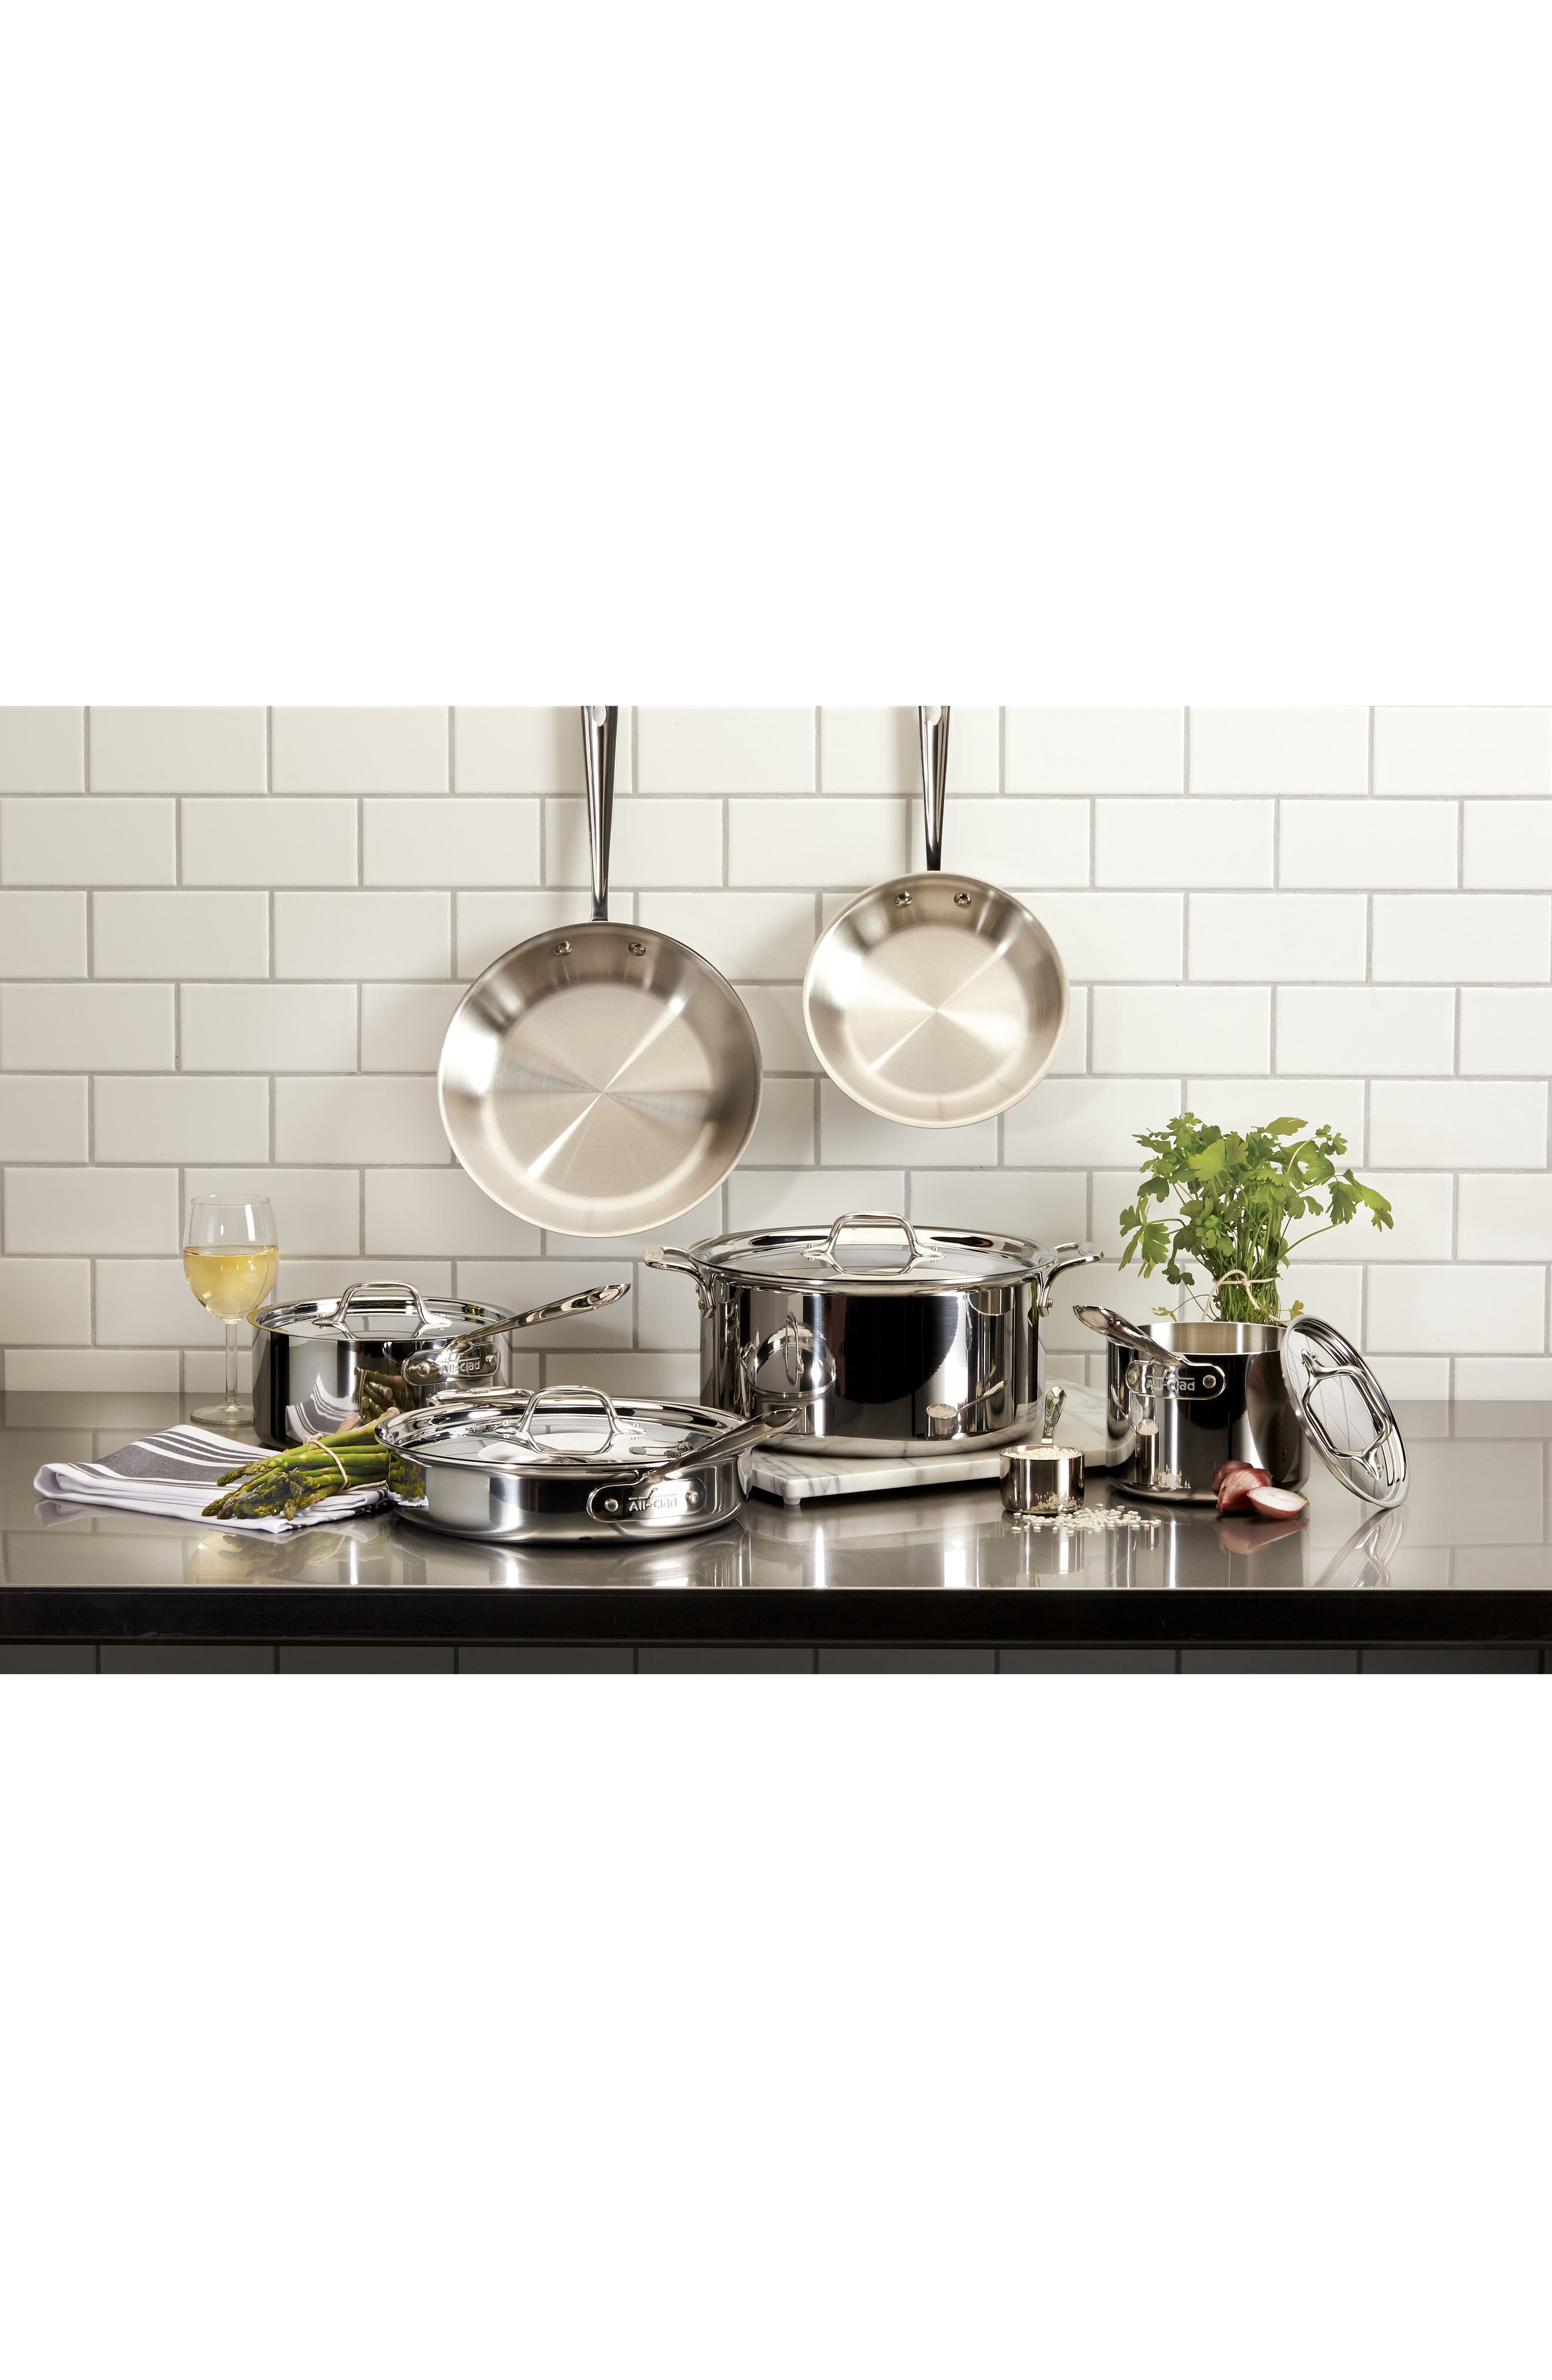 ALL-CLAD, 10-Piece Stainless Steel Cookware Set, Alternate thumbnail 2, color, STAINLESS